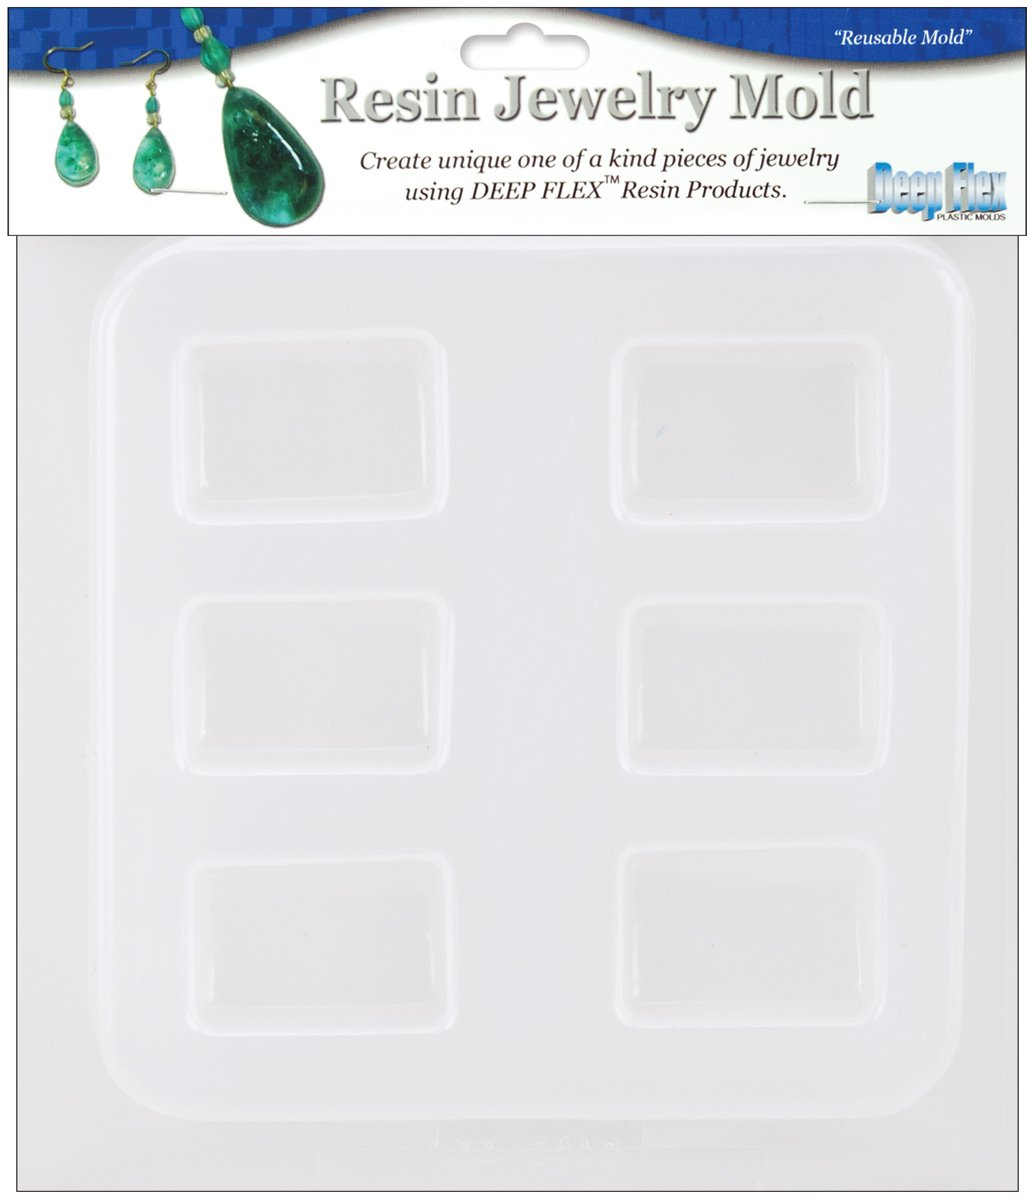 Yaley Resin Jewelry Mold, Multi-Colour, 18.41 x 17.52 x 1.65 cm 08-0566H